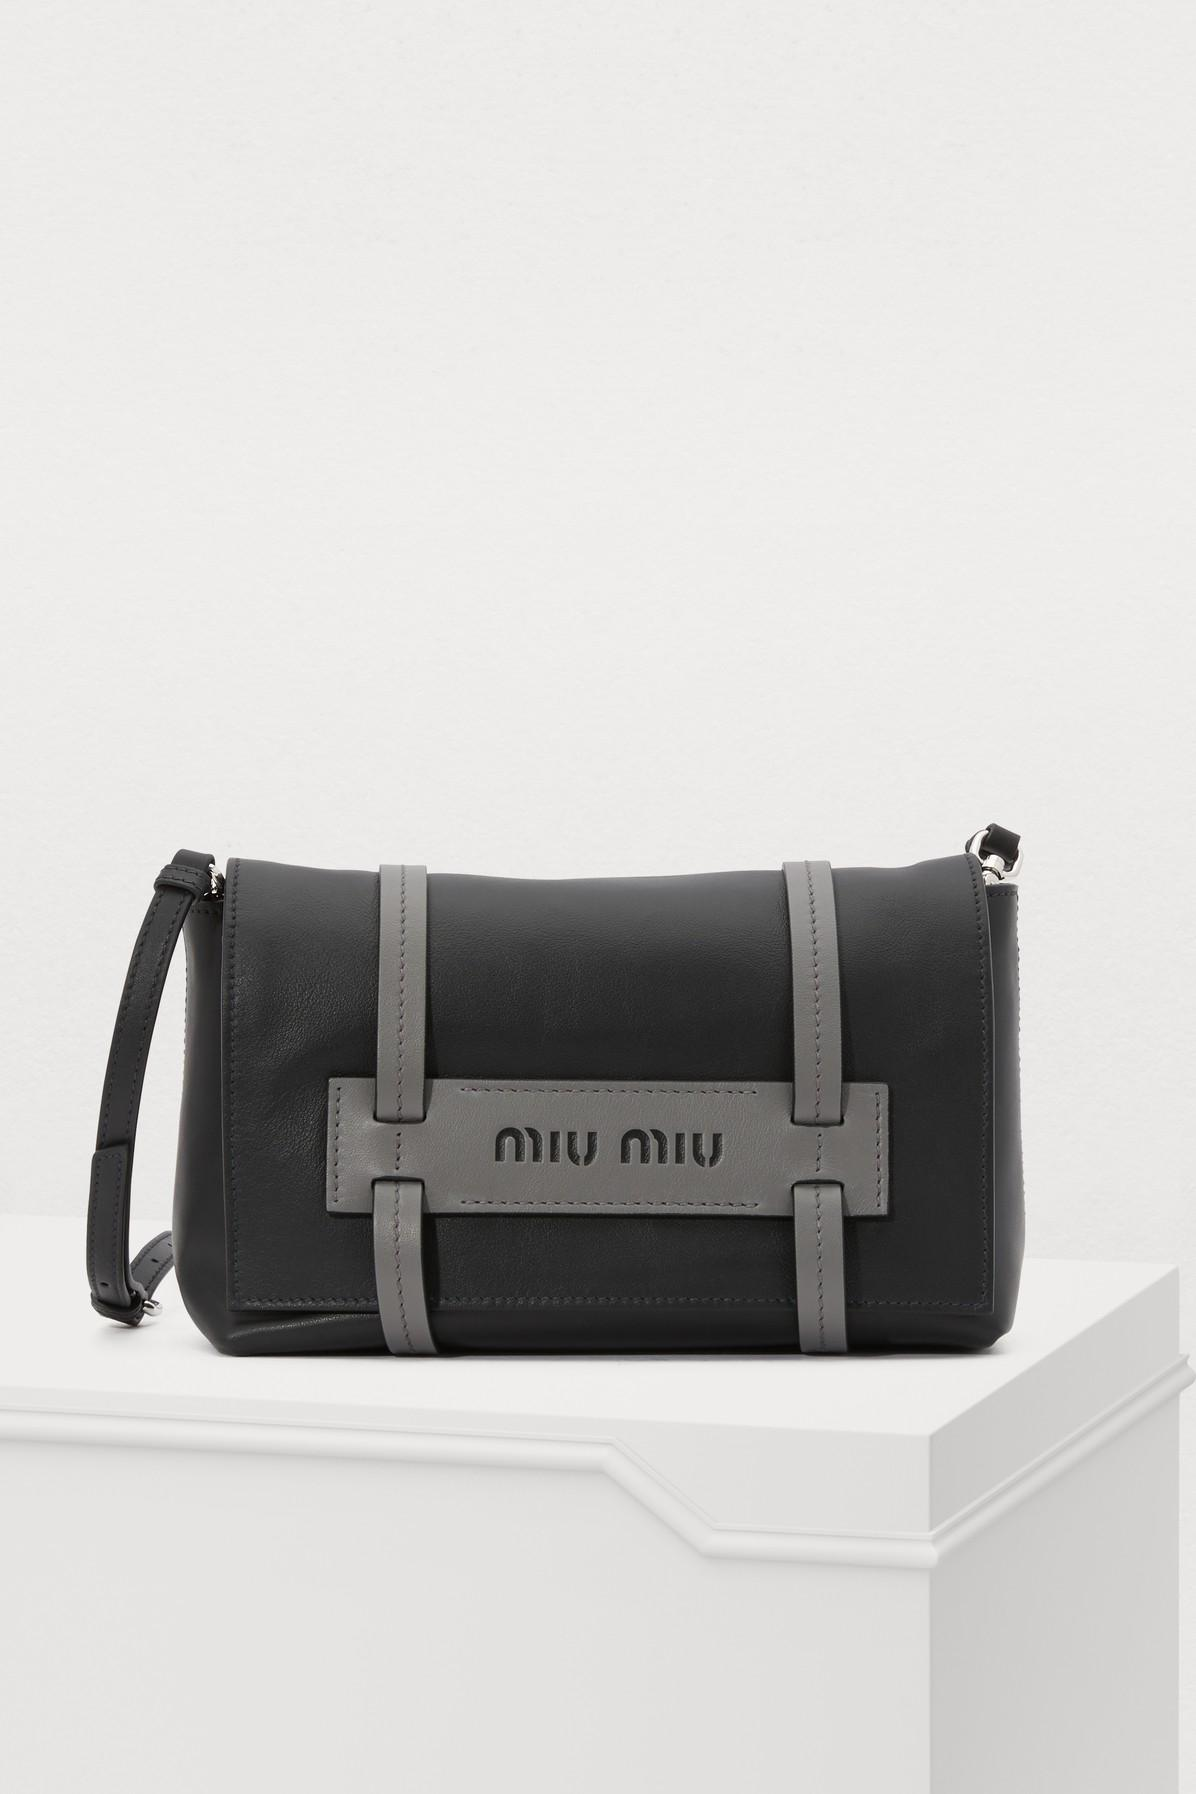 Miu Miu Grace Lux Crossbody Bag in Black - Lyst 90214c23c0256